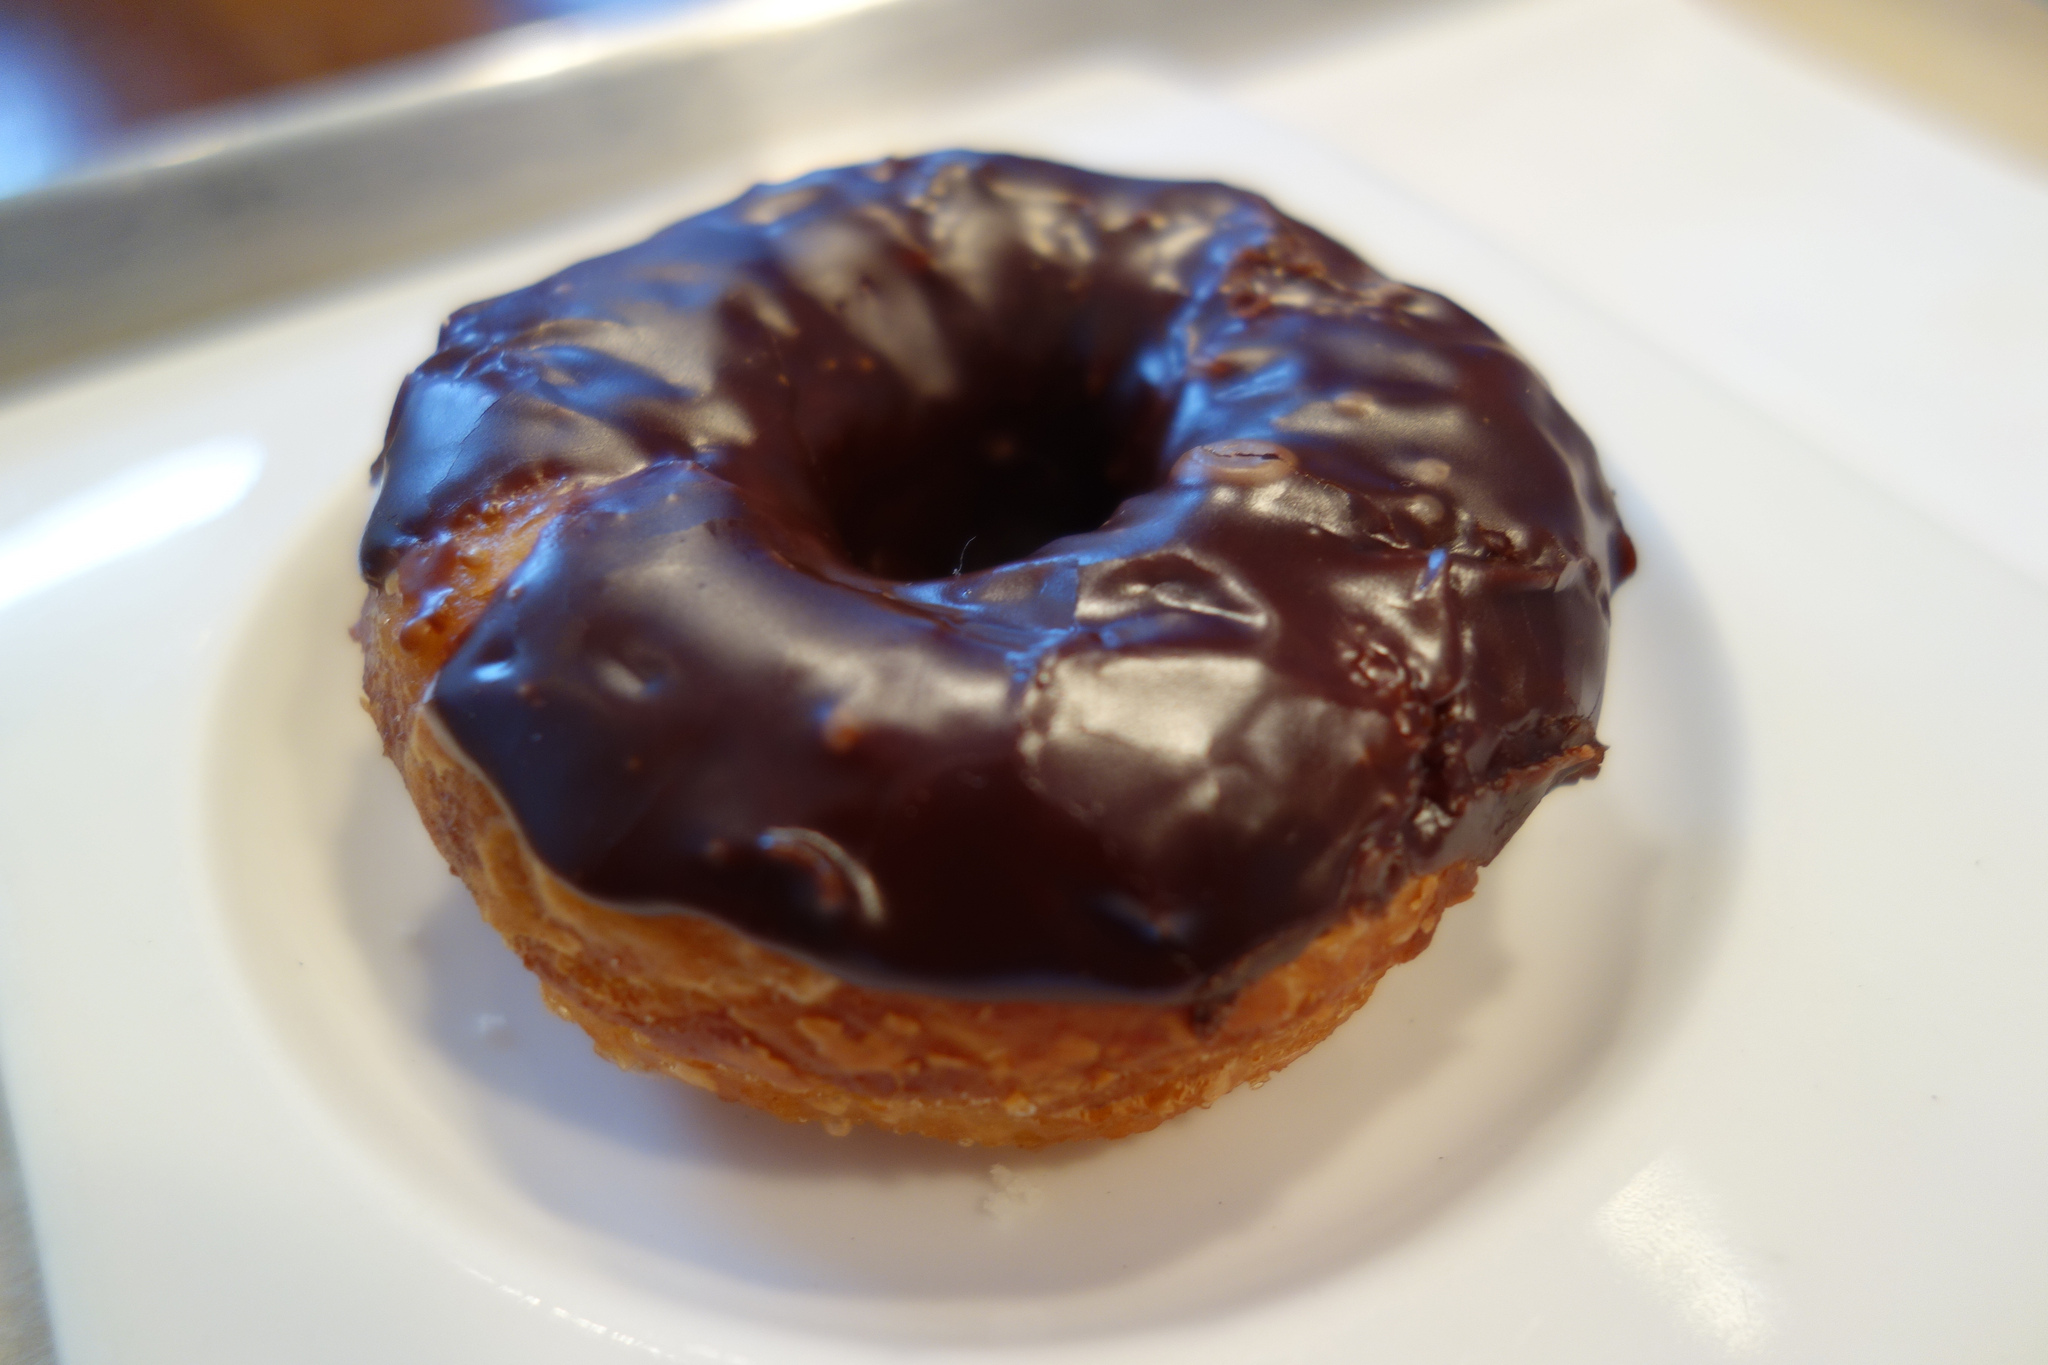 Chocolate glazed from ManhattanJack. (Photo: Paul Broussard)